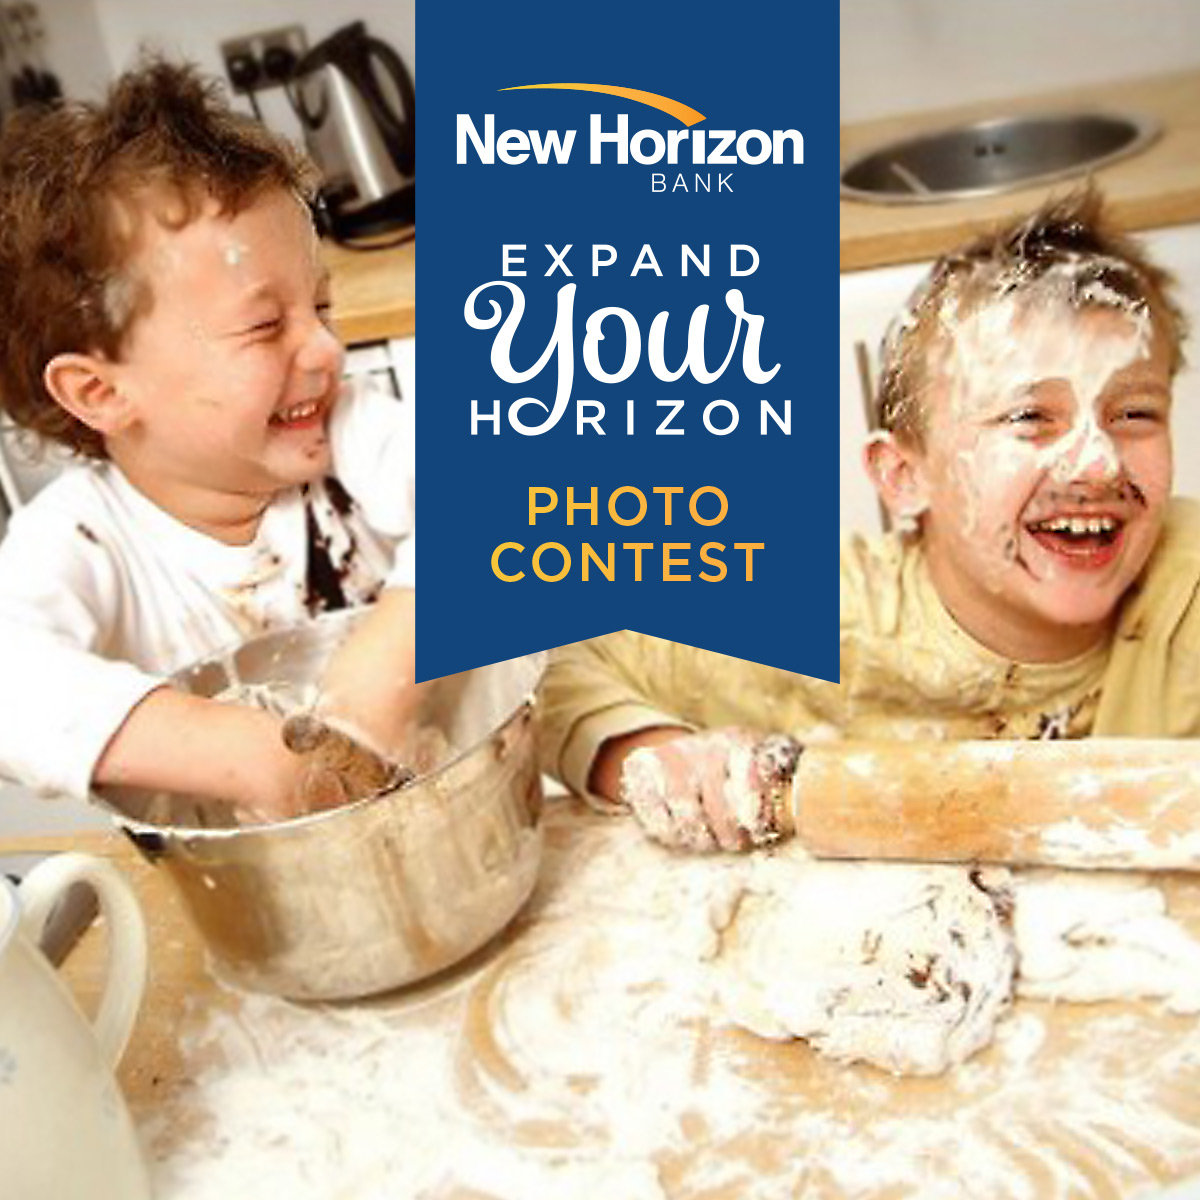 New Horizon Bank Online Contest Promotion by Landis Productions